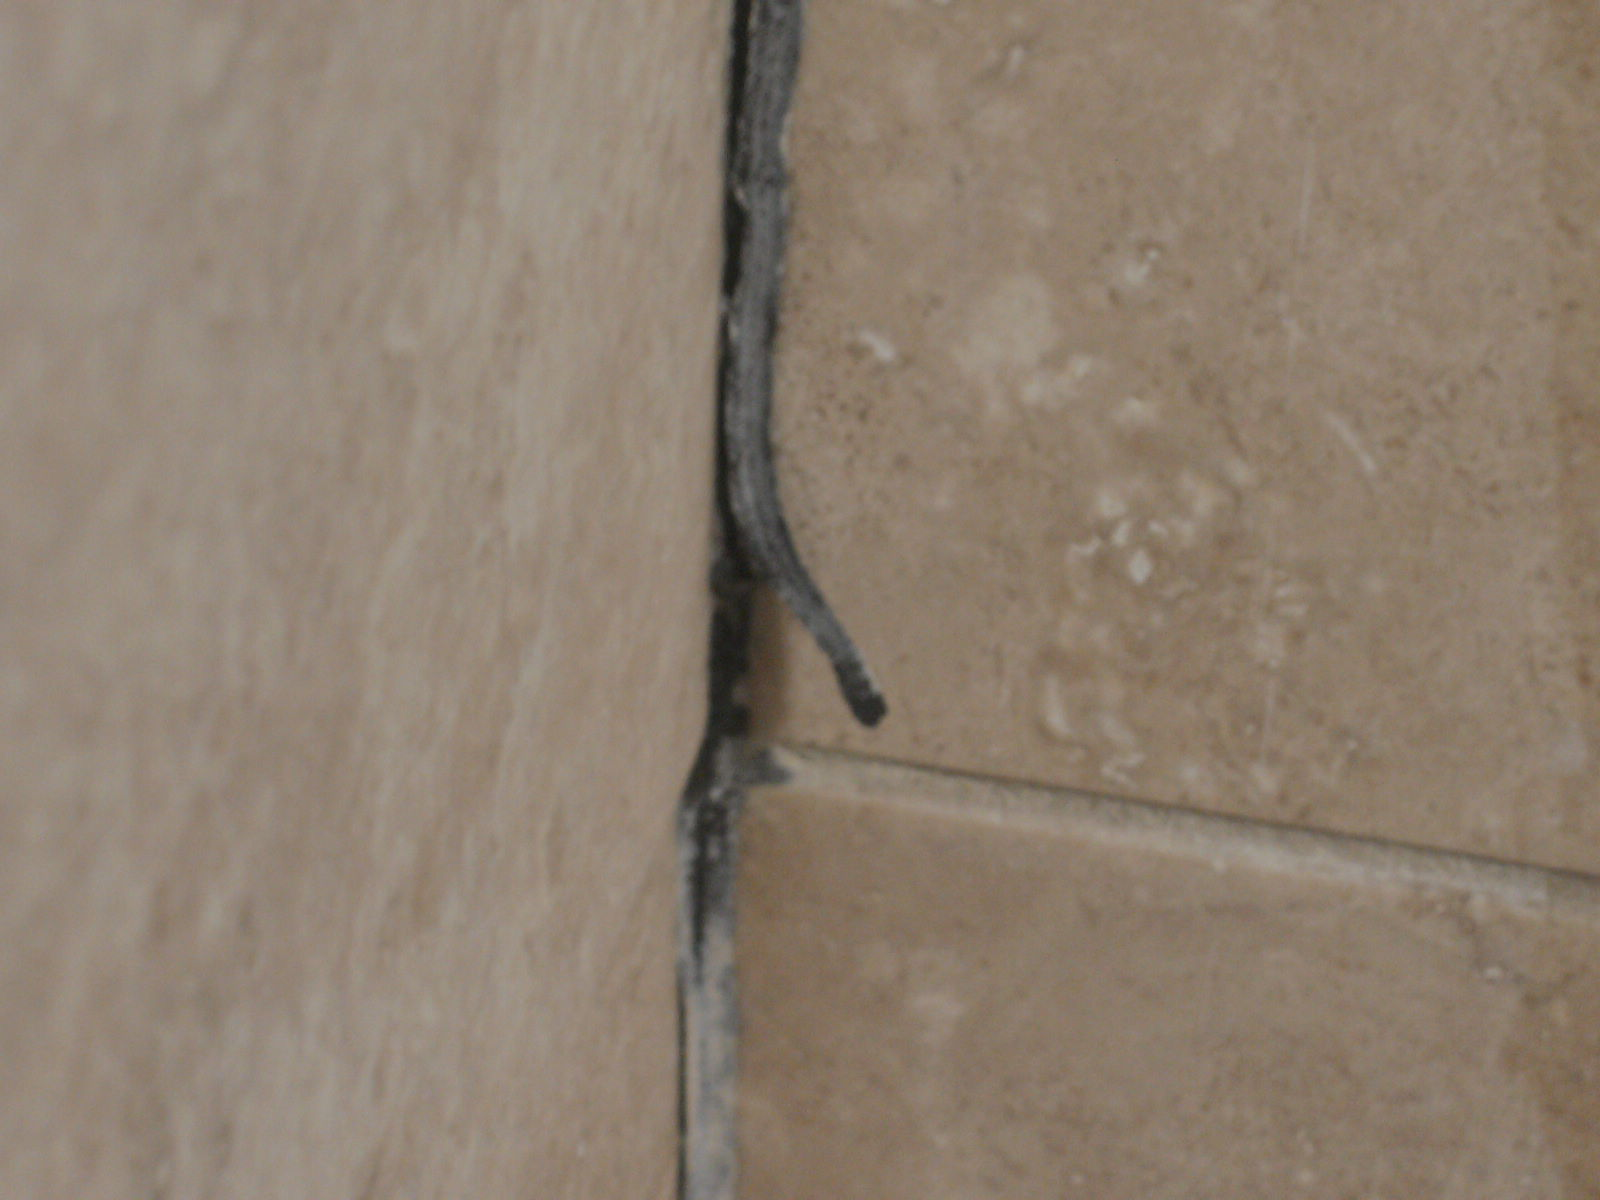 in this shot you can see where the caulk has failed and mold is permeating into the corner when water continues to seep into the seam between the tile and